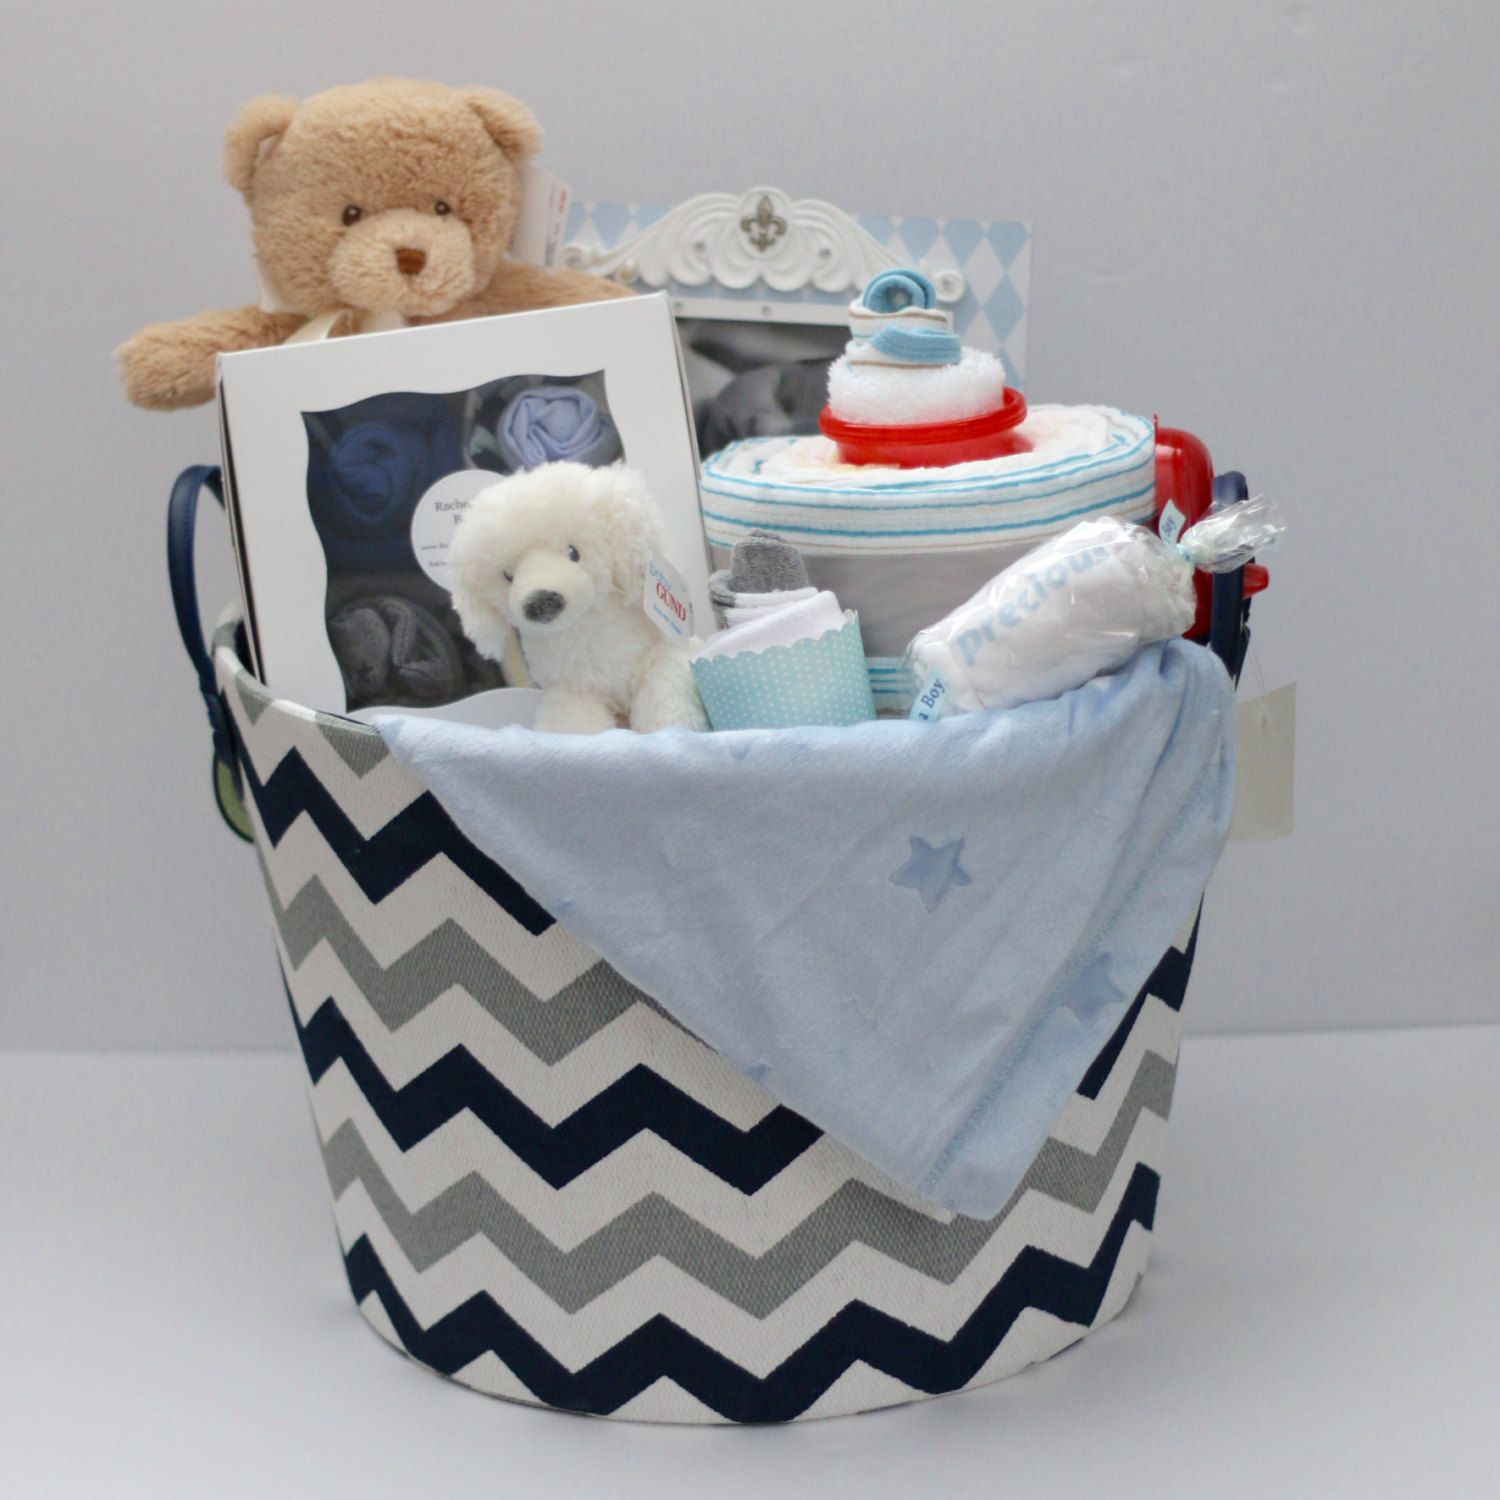 Baby Boy Gift Basket Baby Shower Gift Newborn Gift Chevron Storage Basket Baby picture frame by RsBabyBaskets on Etsy & Baby Boy Gift Basket Baby Shower Gift Newborn Gift Chevron ...